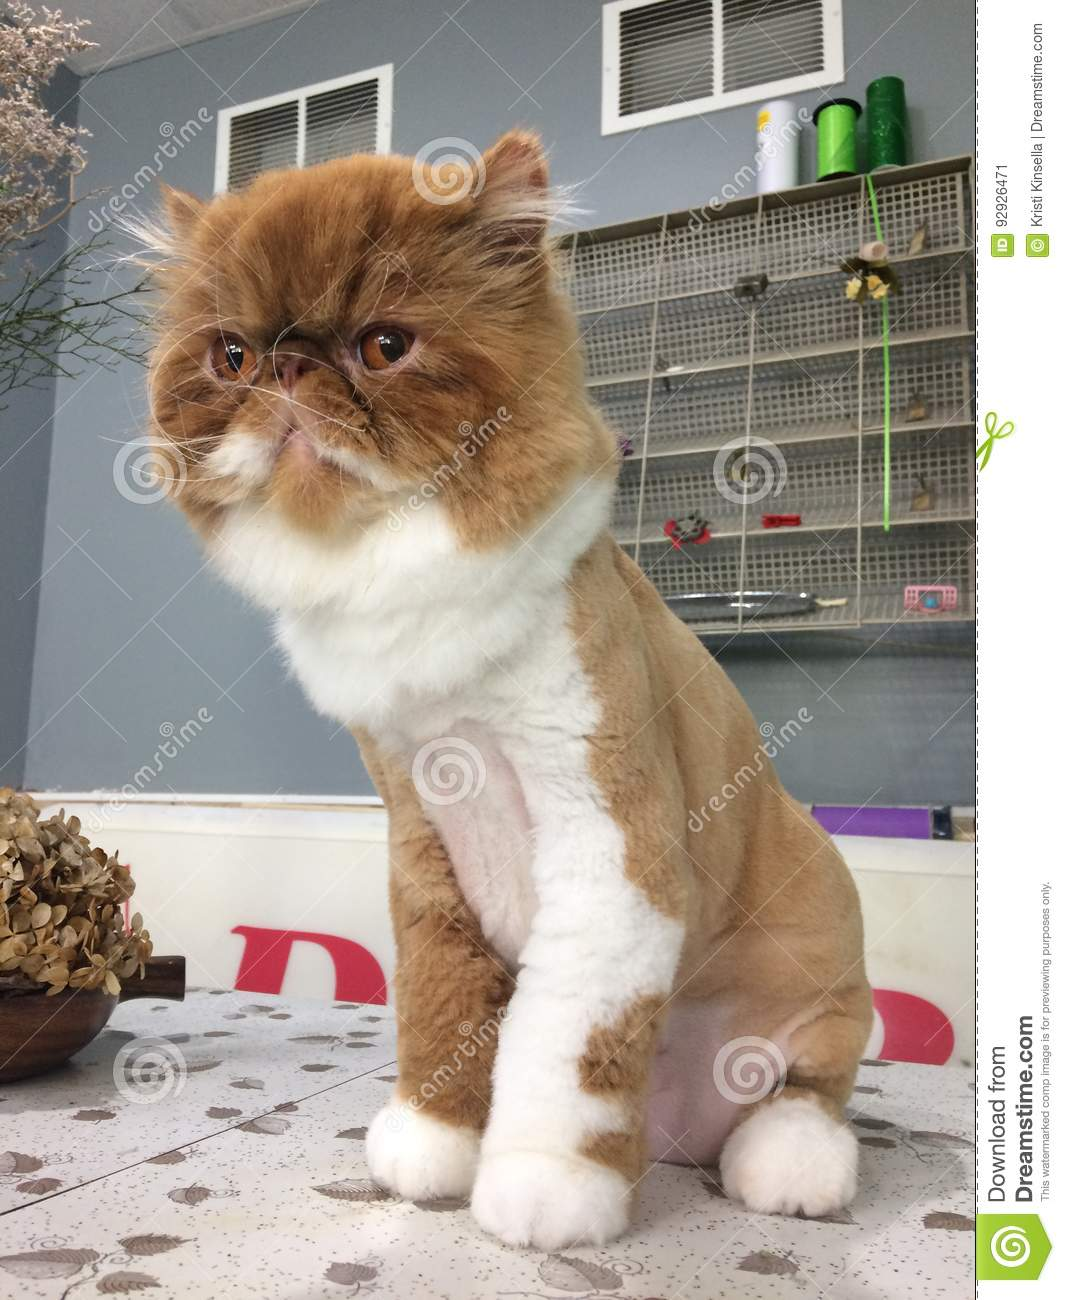 Persian Cat Lion Cut : persian, Brown, White, Rusty, Persian, Vintage, Background, Proud, Stock, Image, Vintage,, White:, 92926471